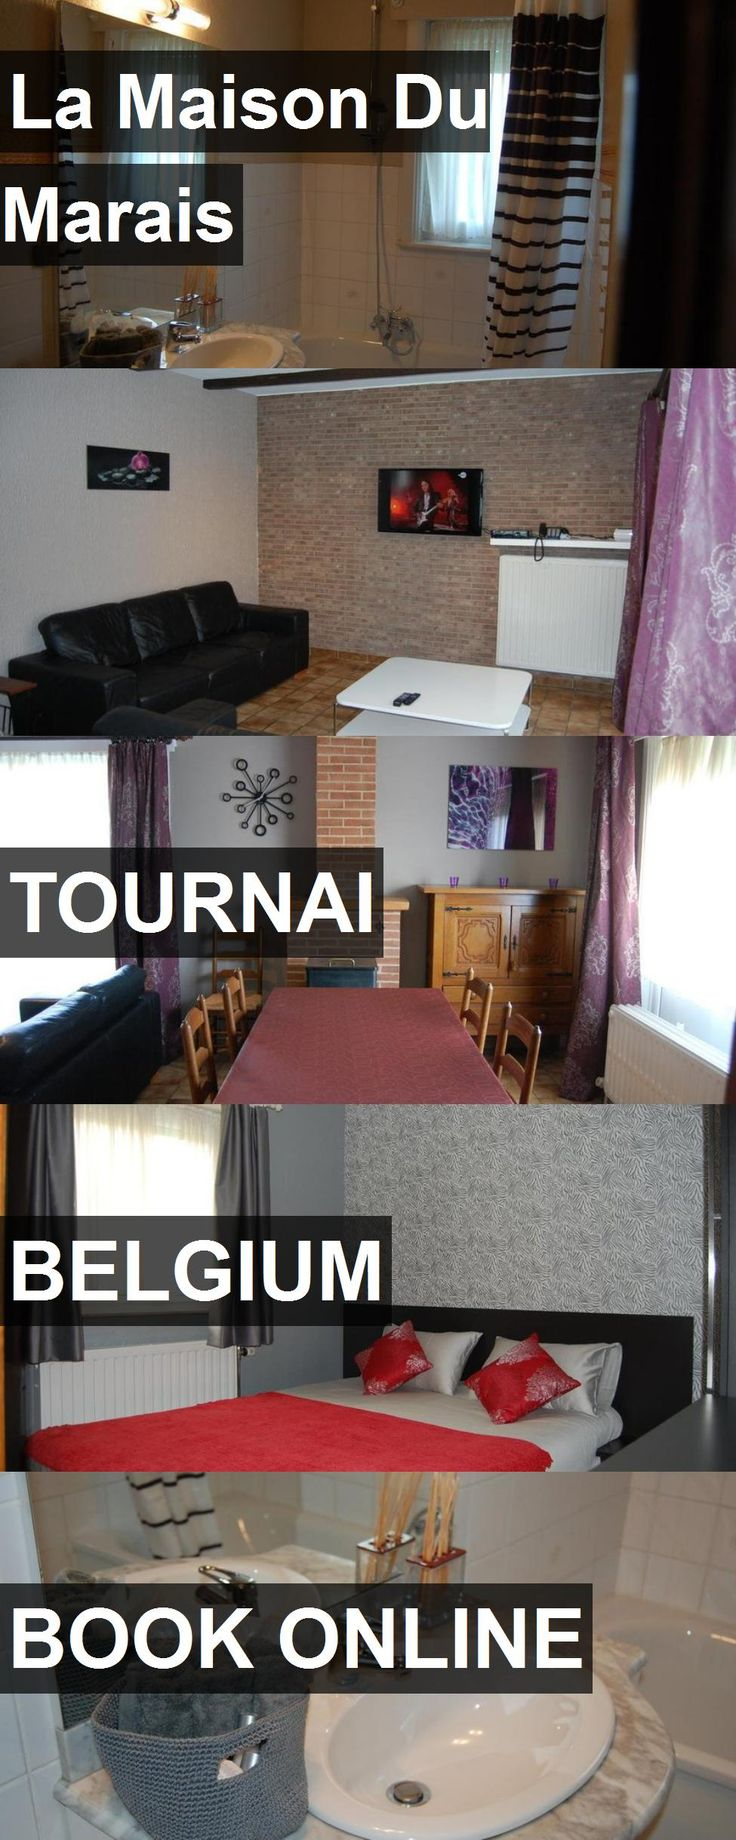 Hotel La Maison Du Marais in Tournai, Belgium. For more information, photos, reviews and best prices please follow the link. #Belgium #Tournai #travel #vacation #hotel